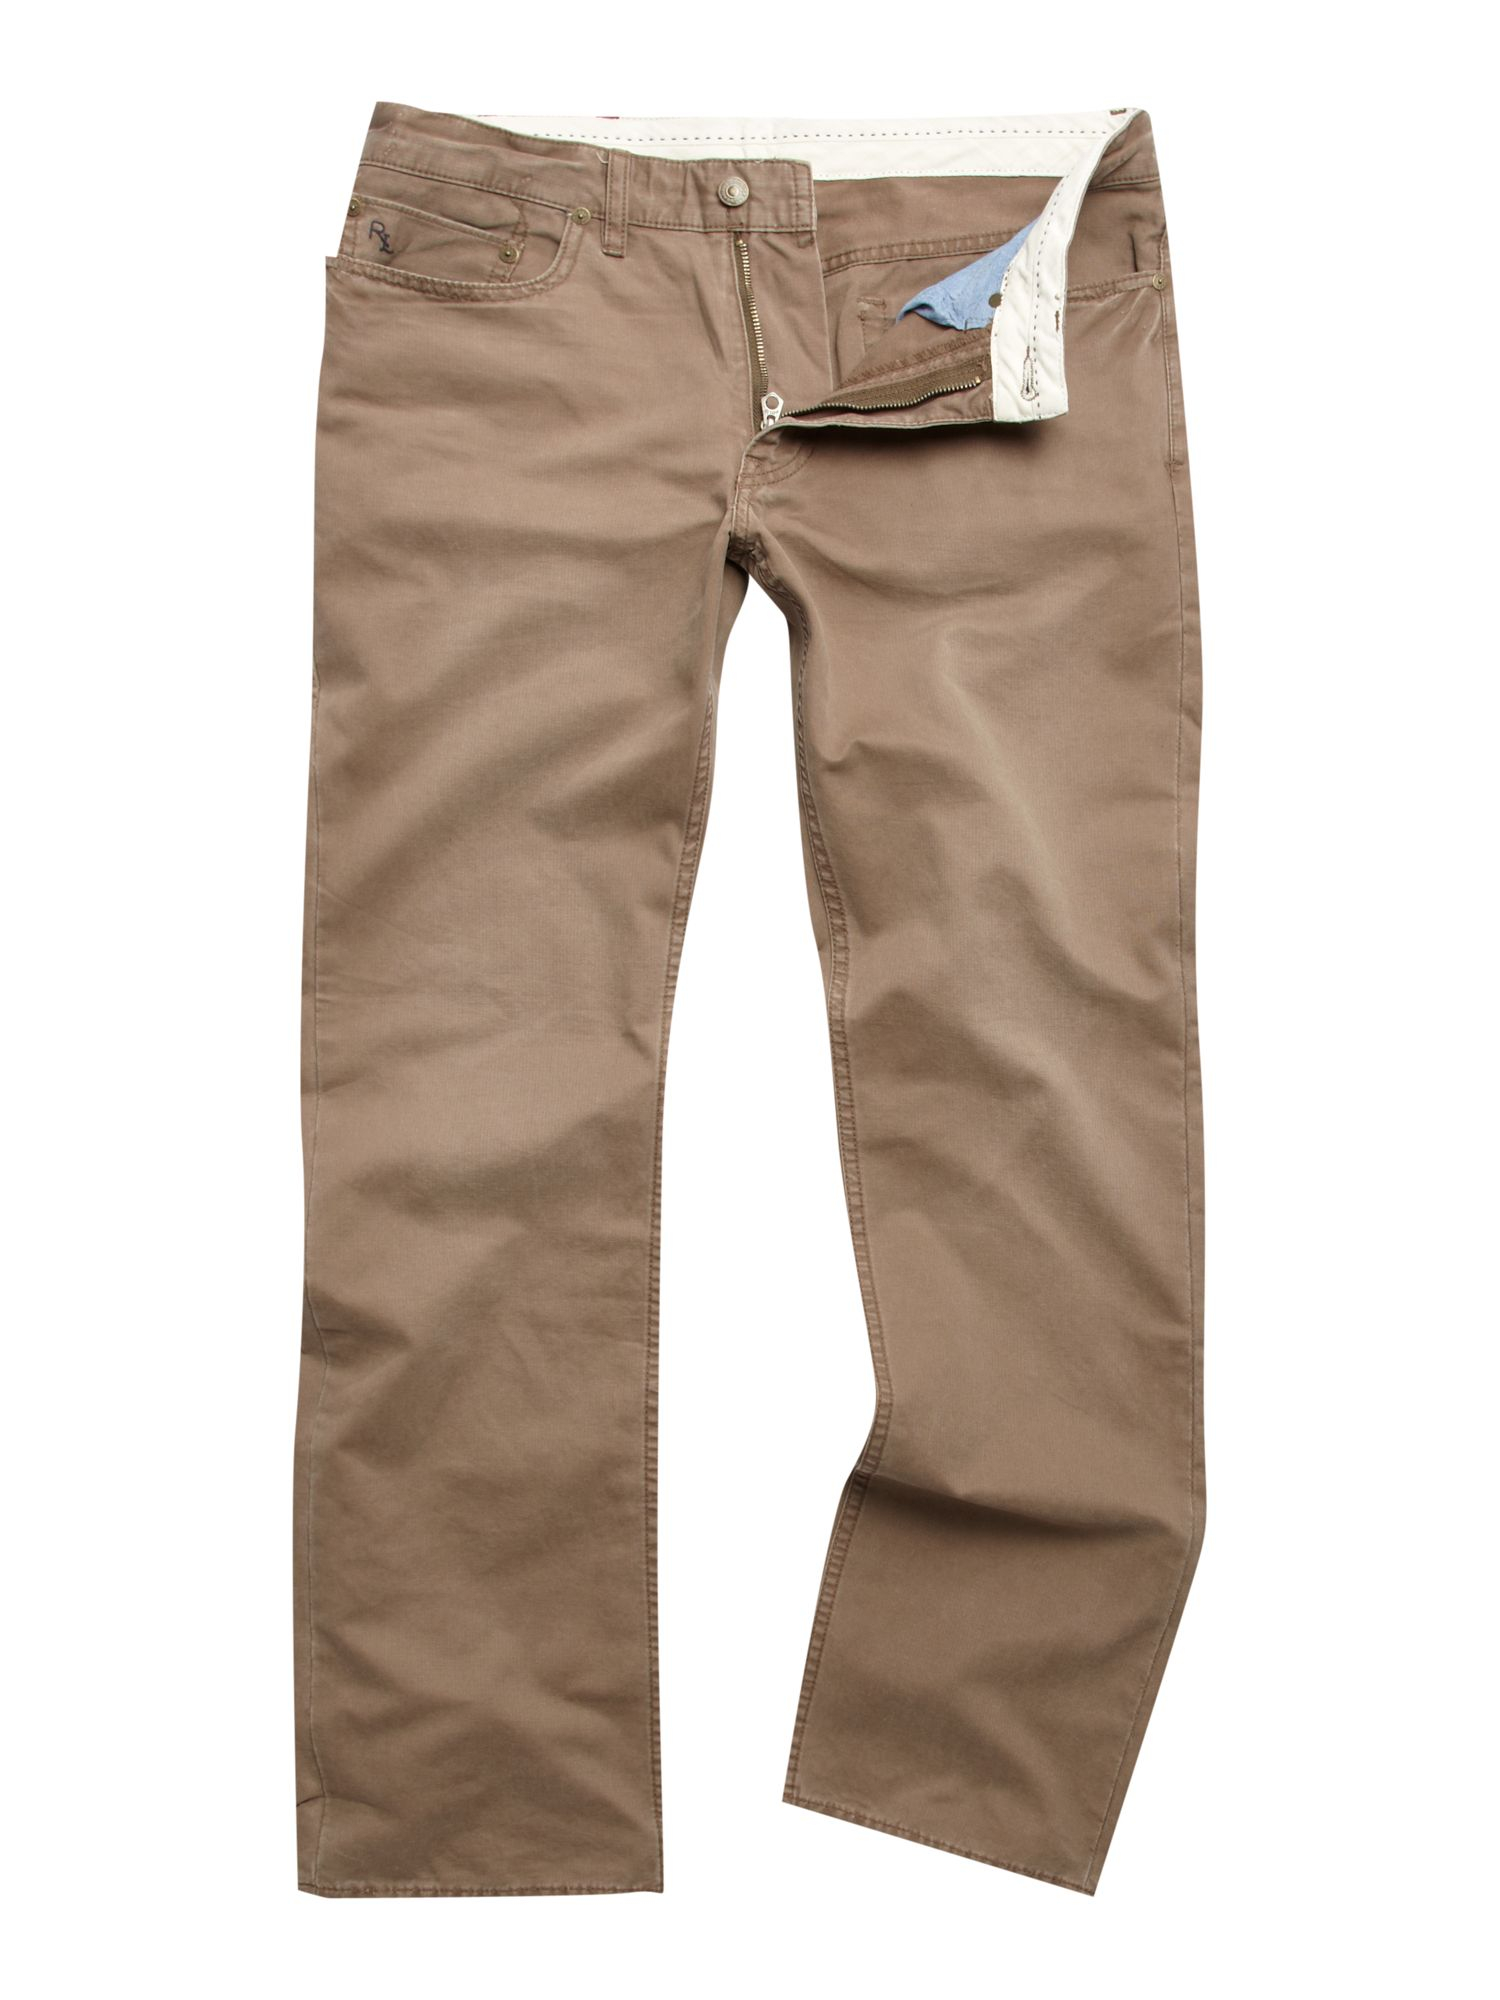 Polo Ralph Lauren 5 Pocket Bedford Chino In Brown For Men